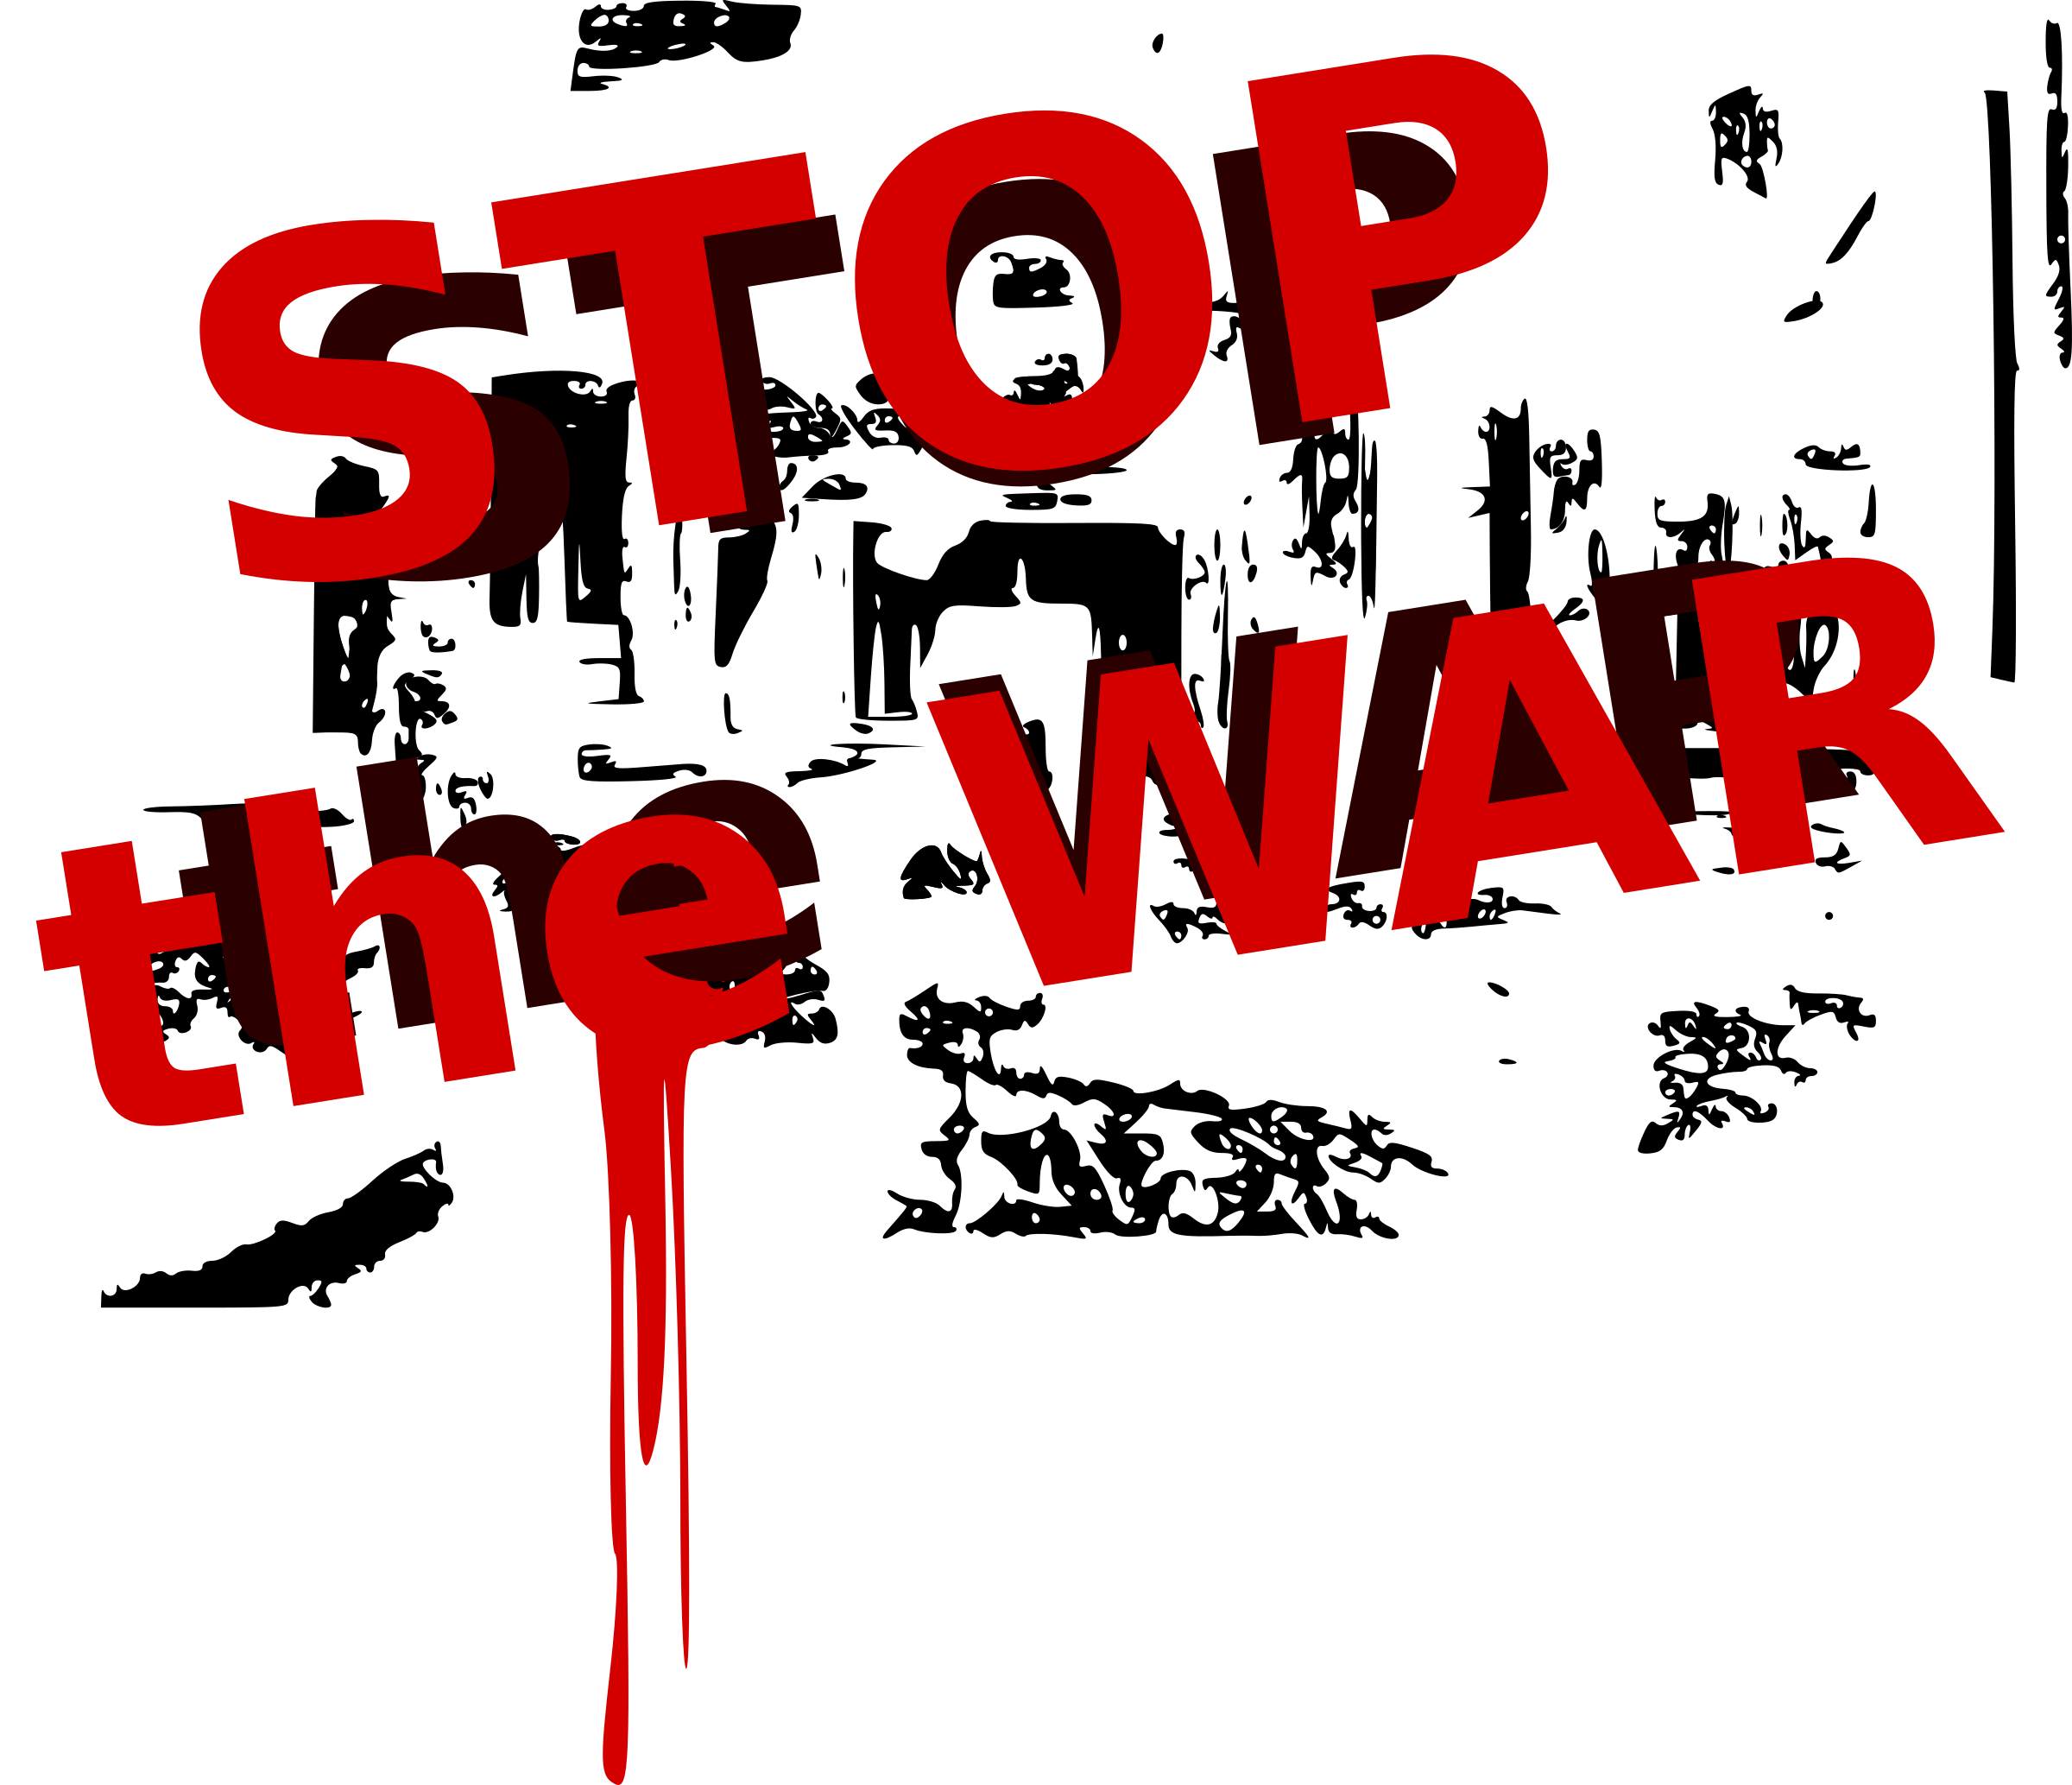 Stop The War by hackdorte